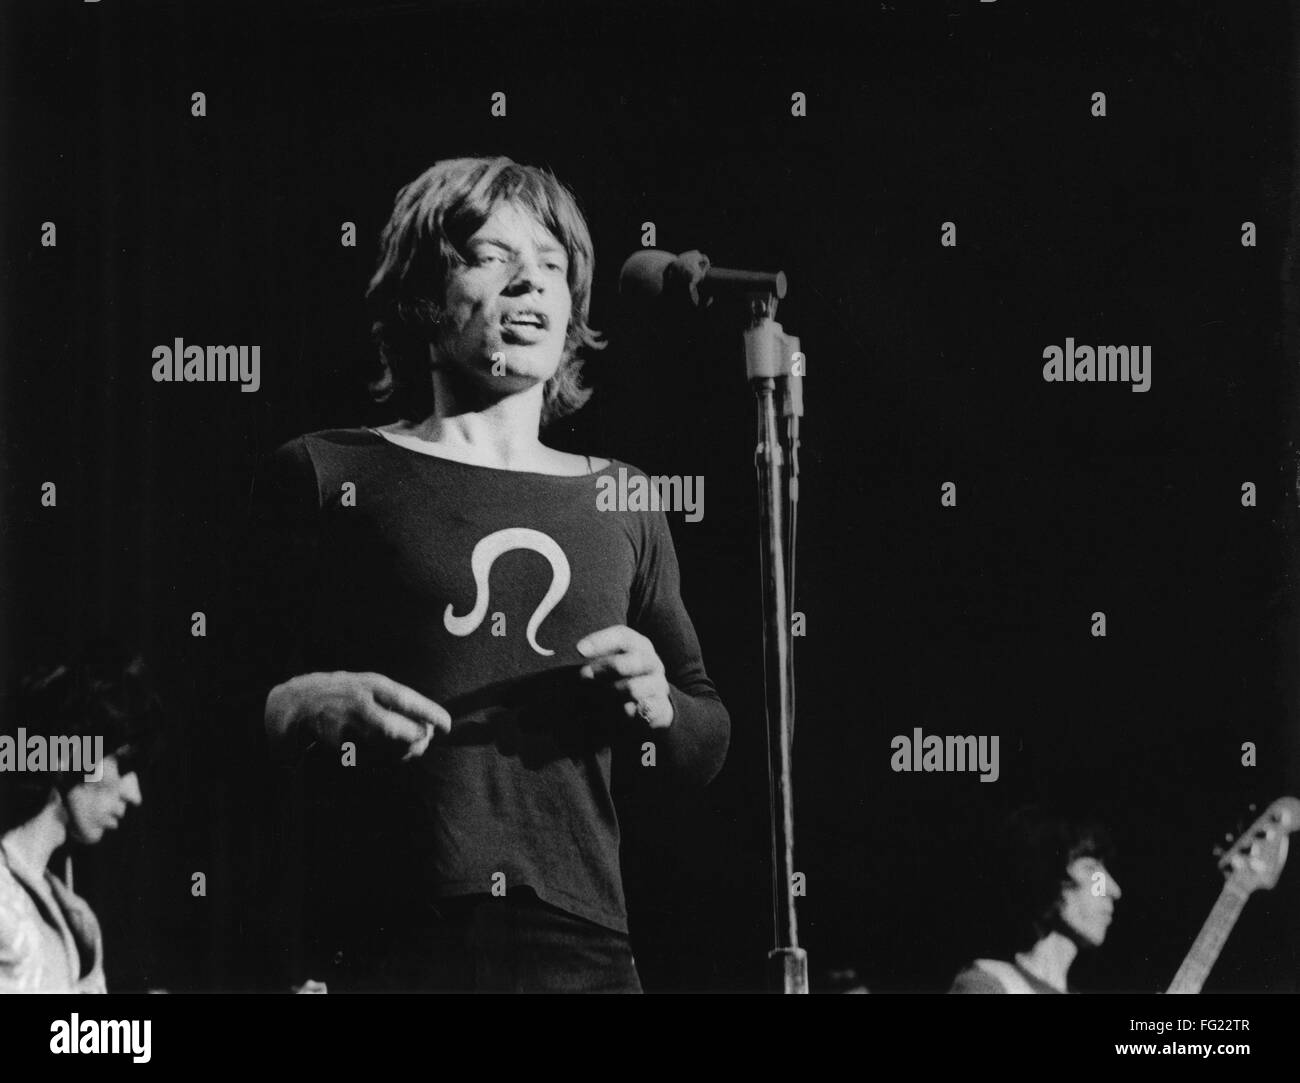 The rolling stones 1969 nmick jagger performs with the rolling nmick jagger performs with the rolling stones keith richards in background at madison square garden in new york november 27 1969 workwithnaturefo